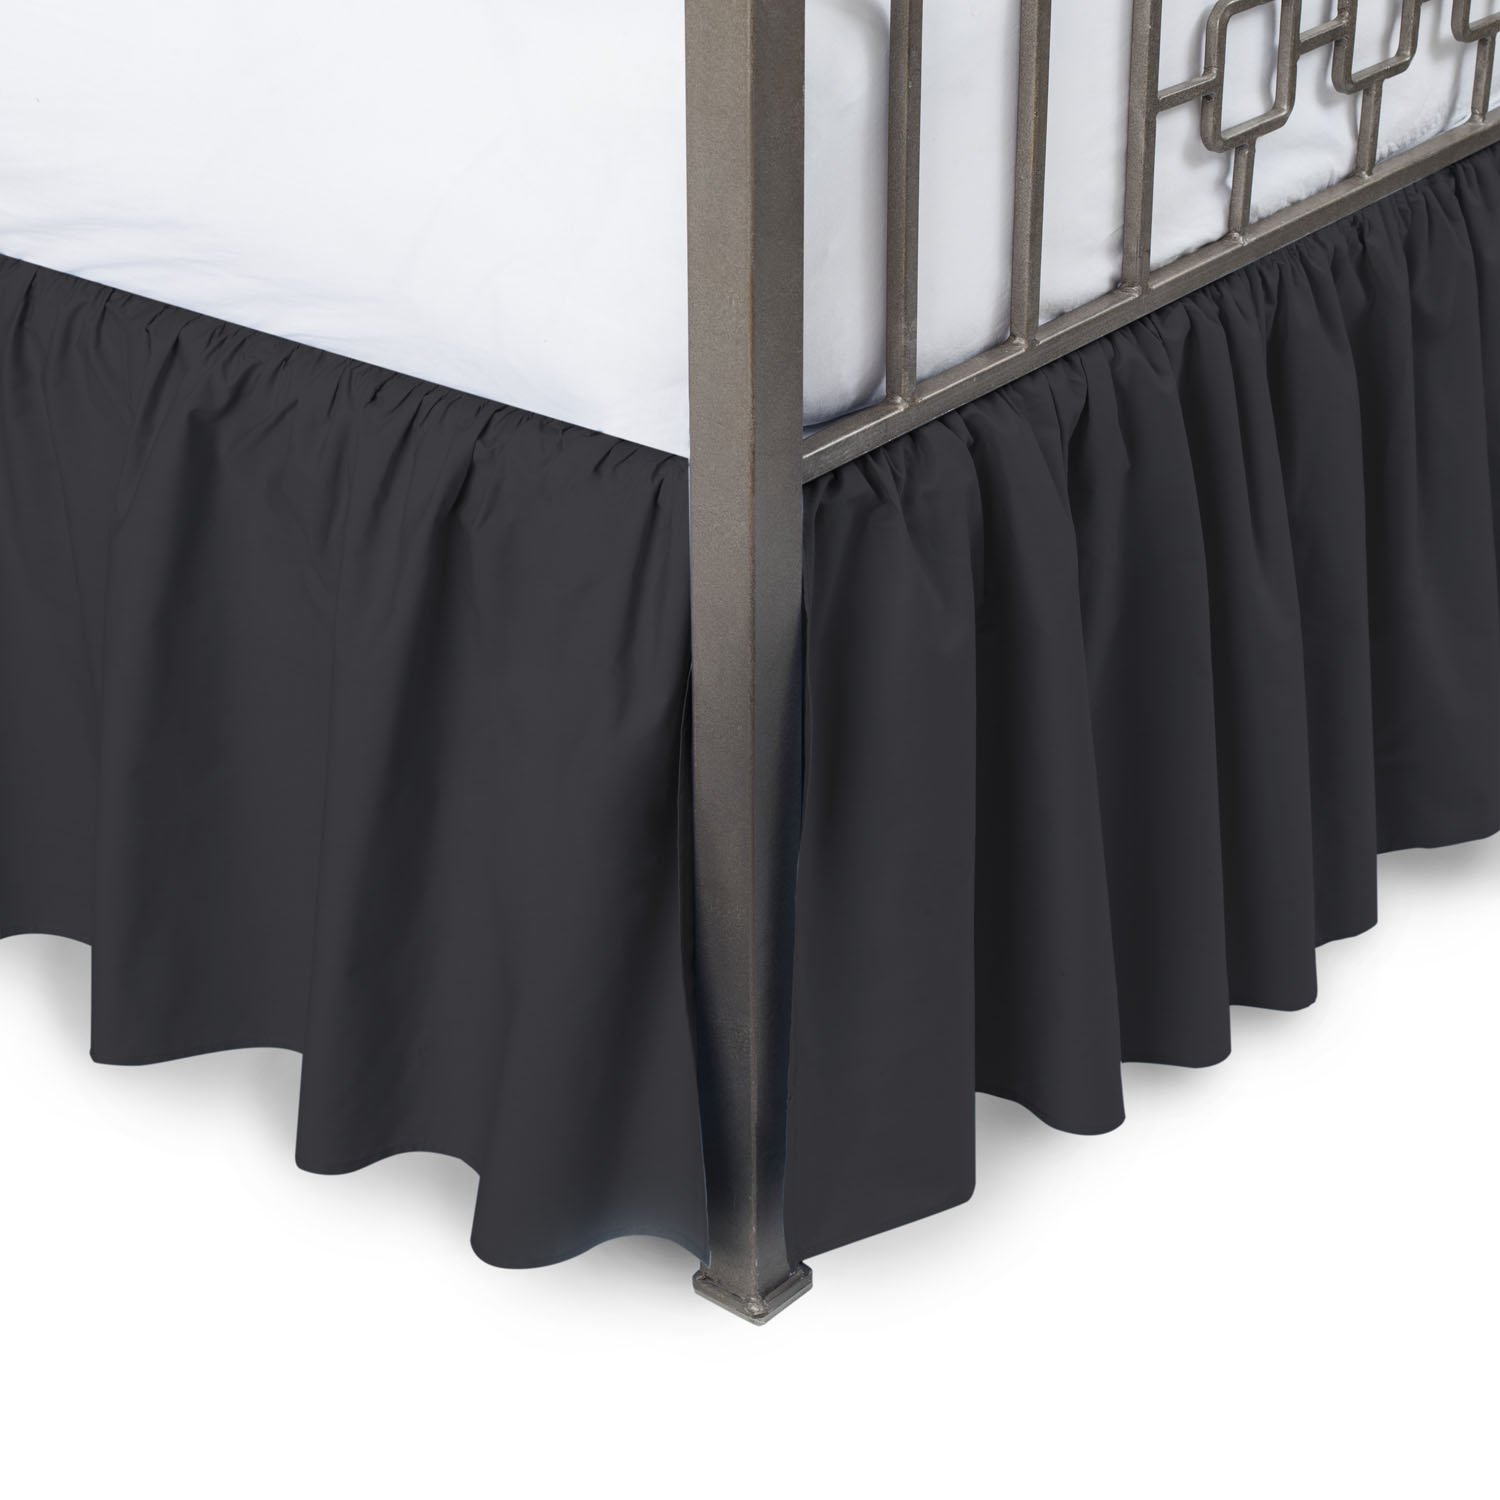 Harmony Lane Ruffled Bed Skirt with Split Corners - Queen, Black, 18 Inch Drop Bedskirt (Available in and 16 Colors)